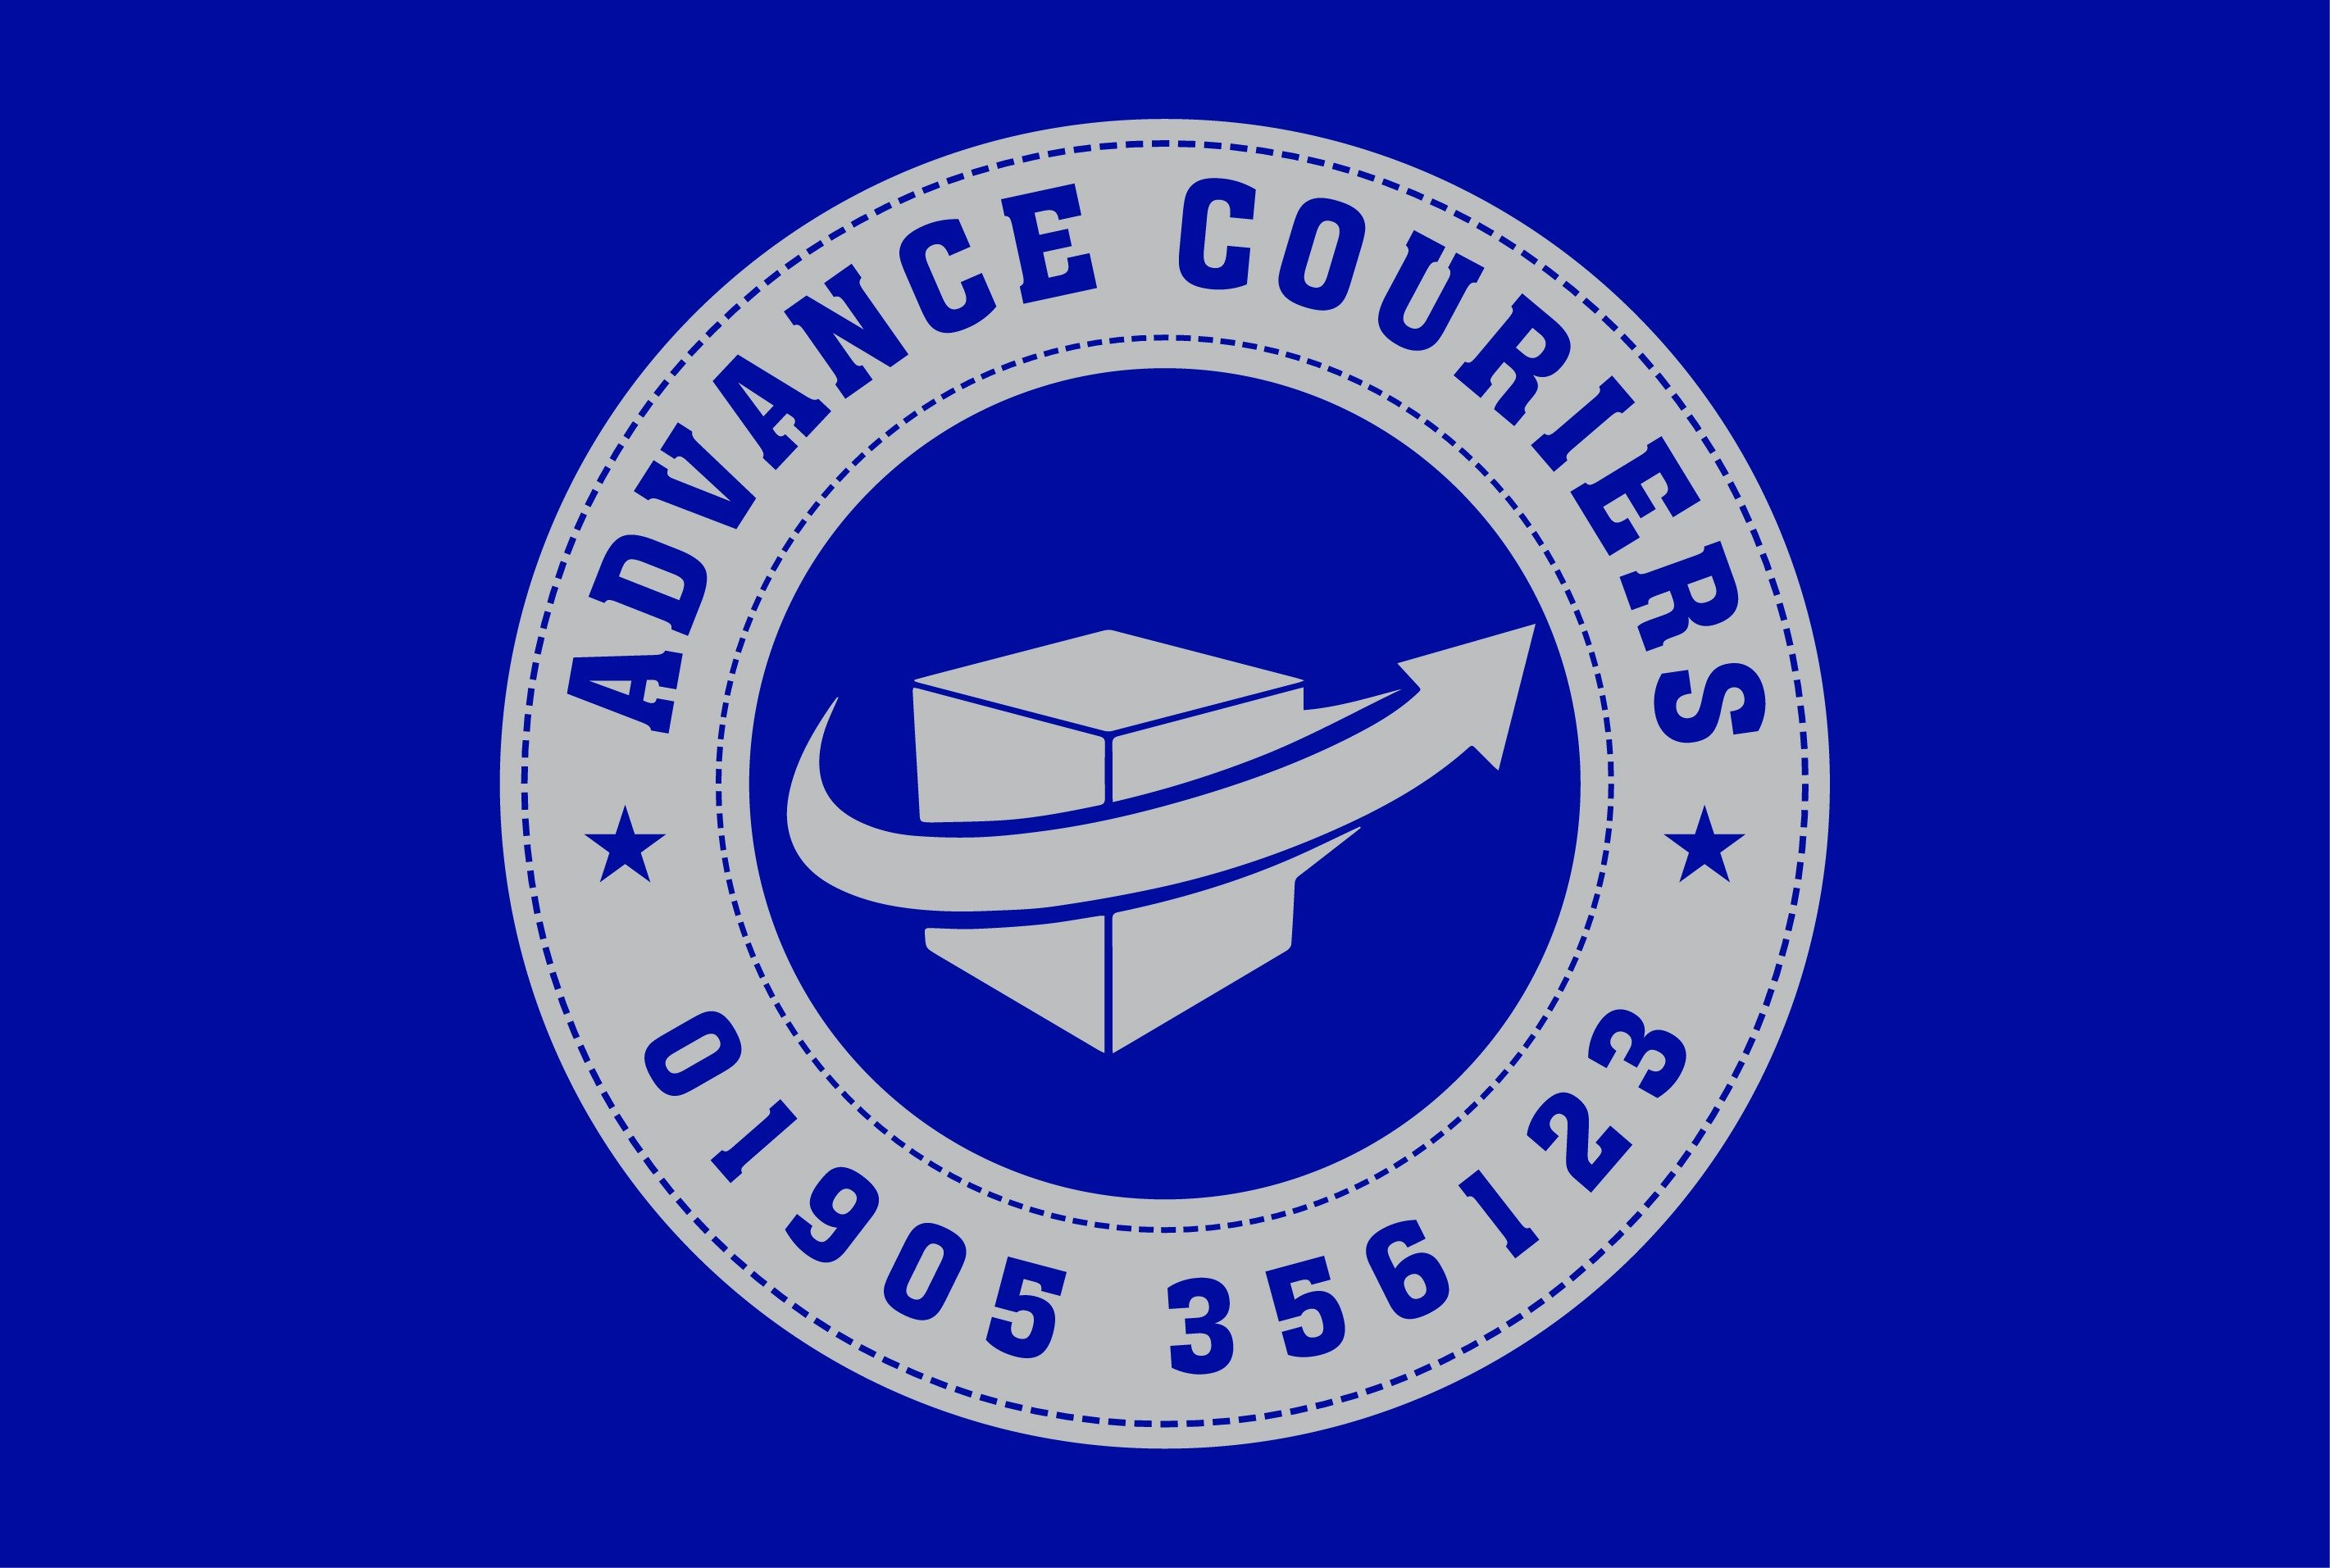 Advance Couriers